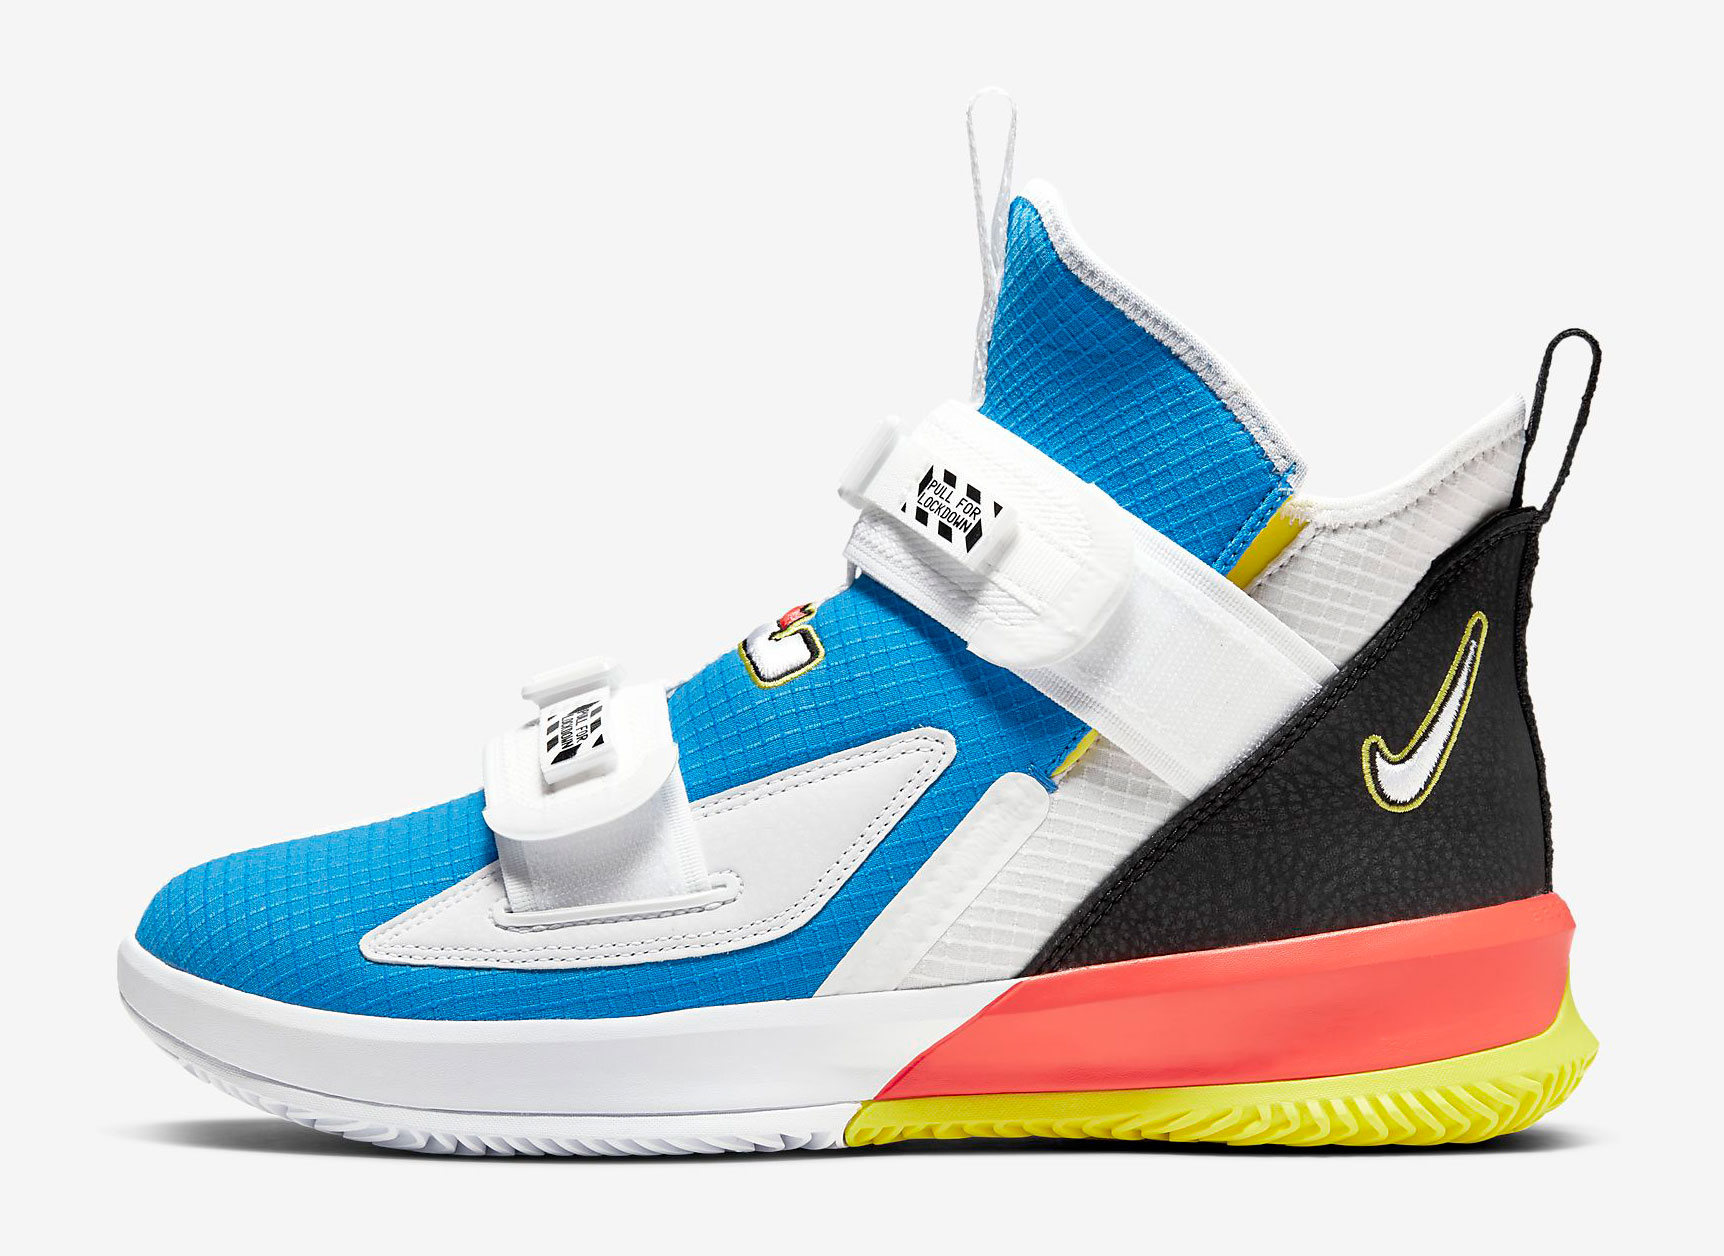 nike-lebron-soldier-13-light-photo-blue-crimson-release-date